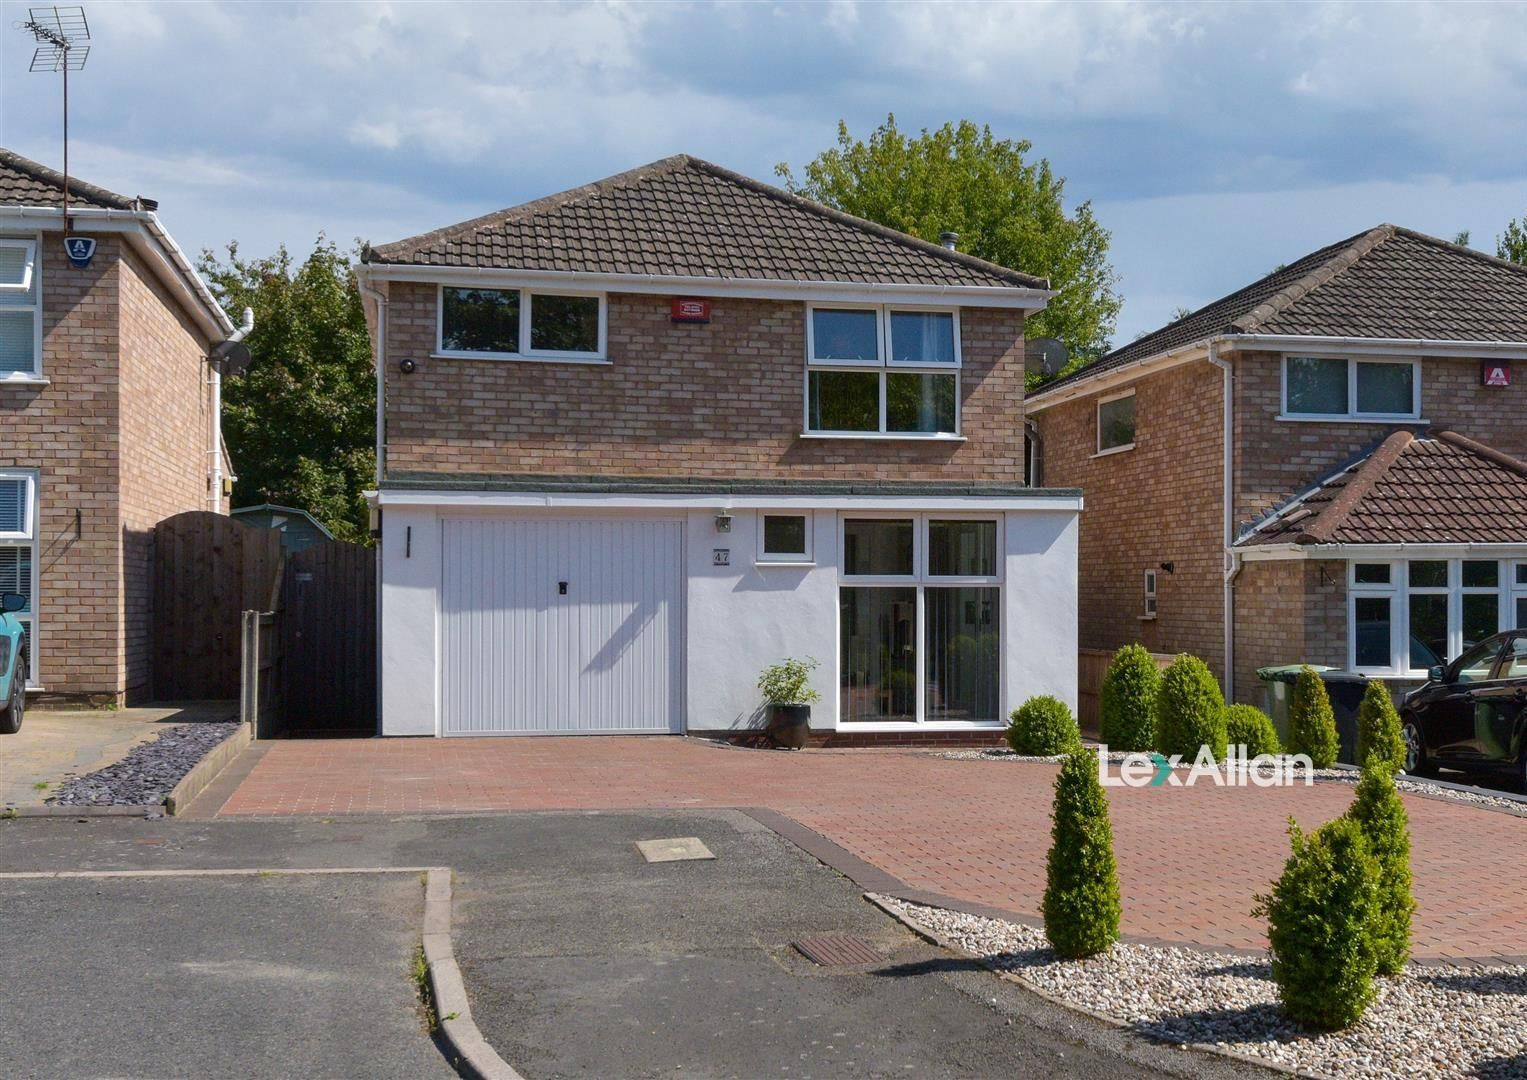 3 bed detached for sale in Pedmore, DY9